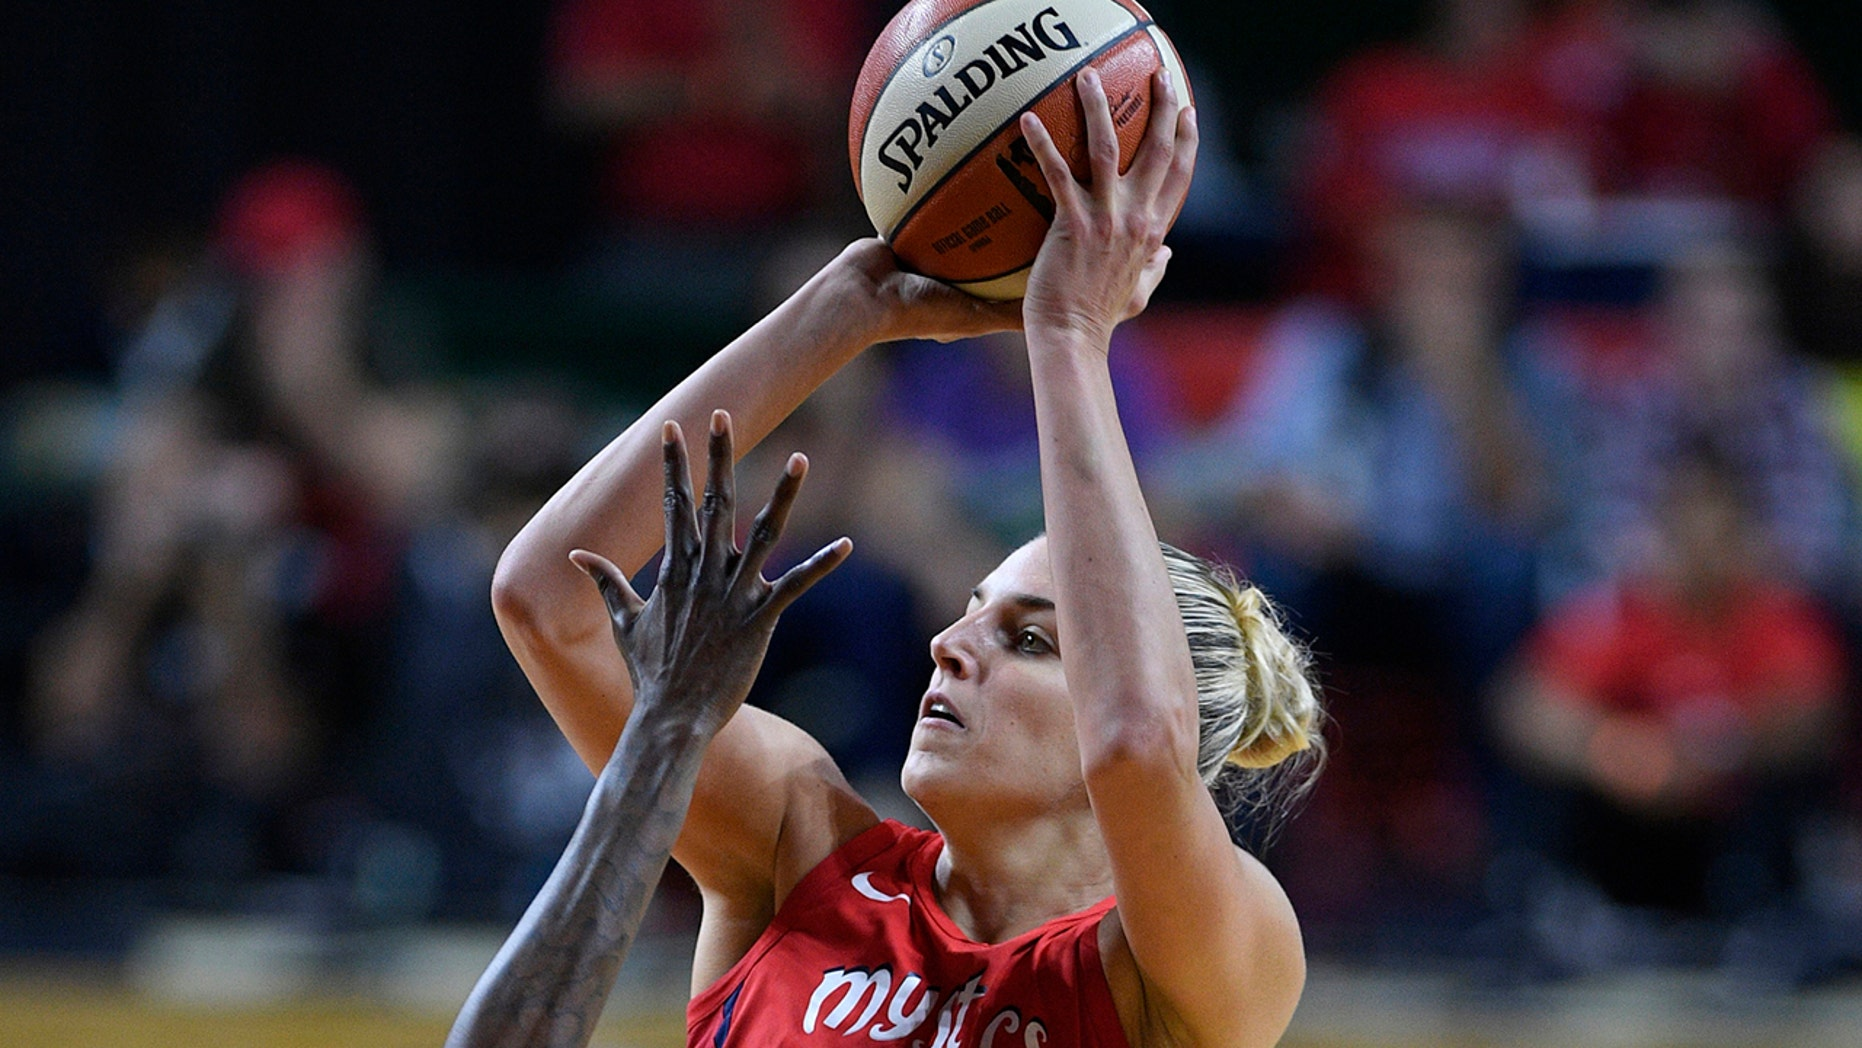 FILE - In this Sept. 12, 2018, file photo, Washington Mystics forward Elena Delle Donne (11) shoots against the Seattle Storm during the second half of Game 3 of the WNBA basketball finals, in Fairfax, Va. Delle Donne was named the Associated Press WNBA OPlayer of the Year, Wednesday, Sept. 11, 2019. (AP Photo/Nick Wass, File)